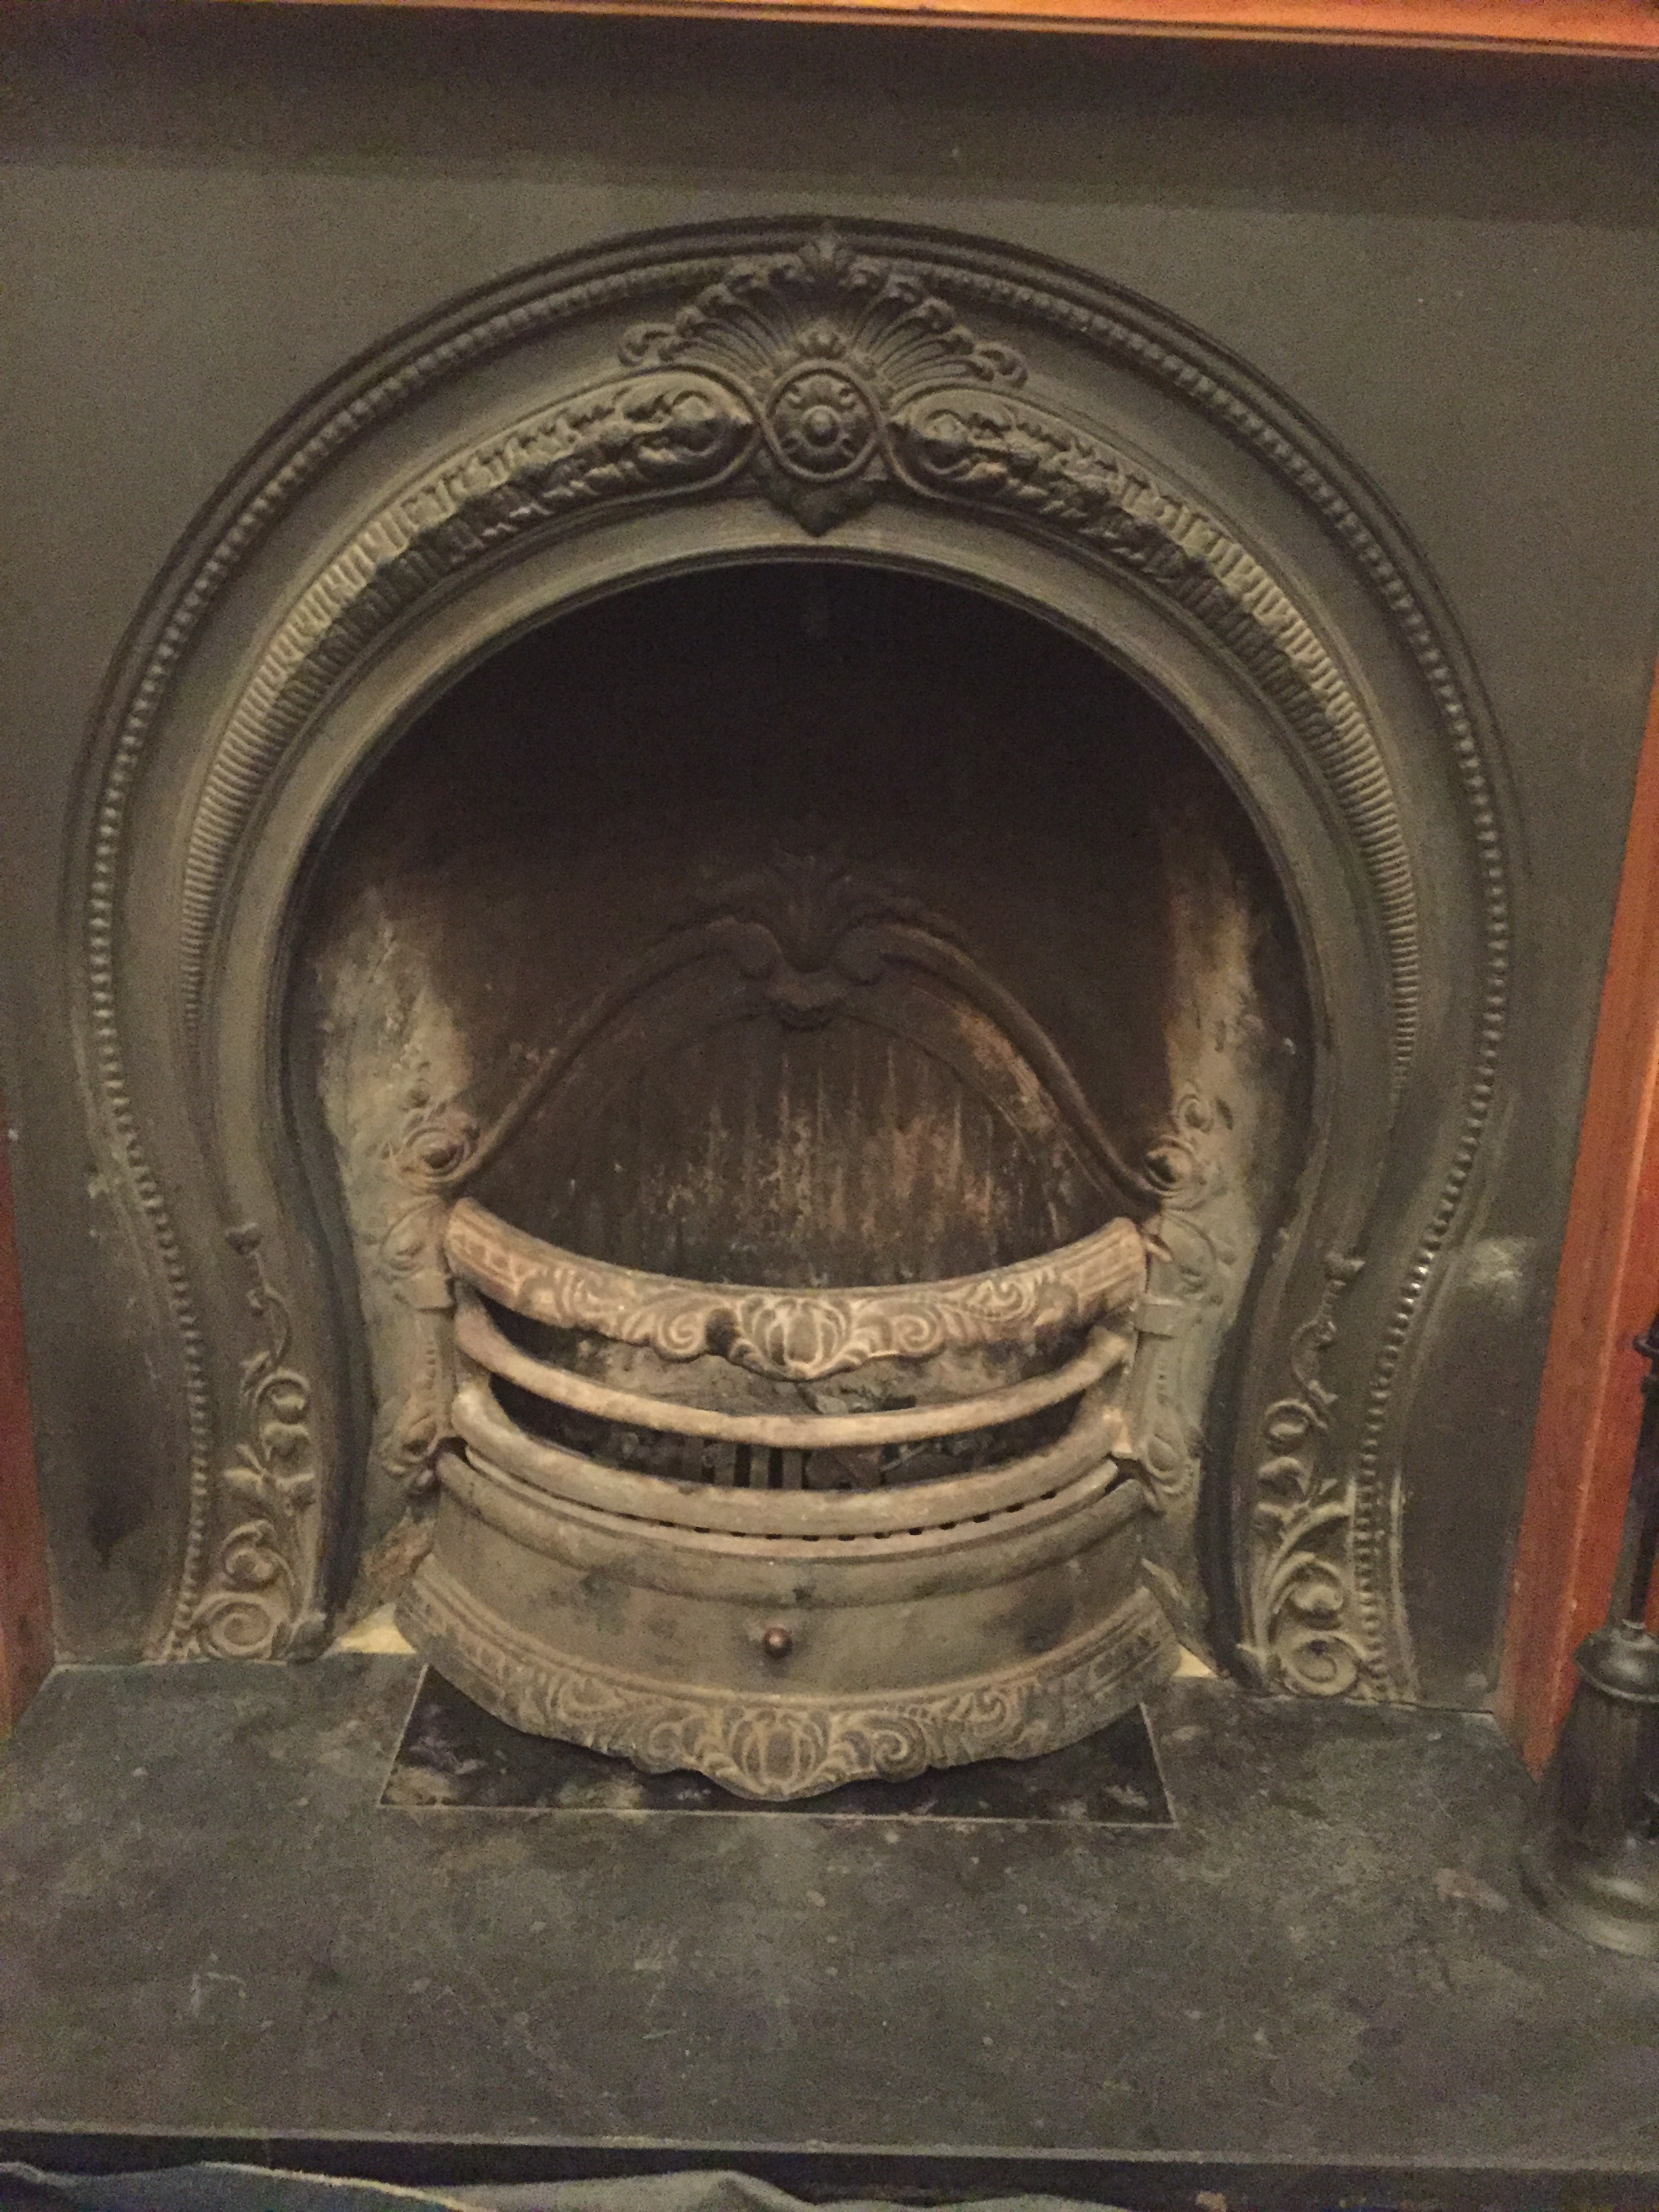 Open fire chimney sweep